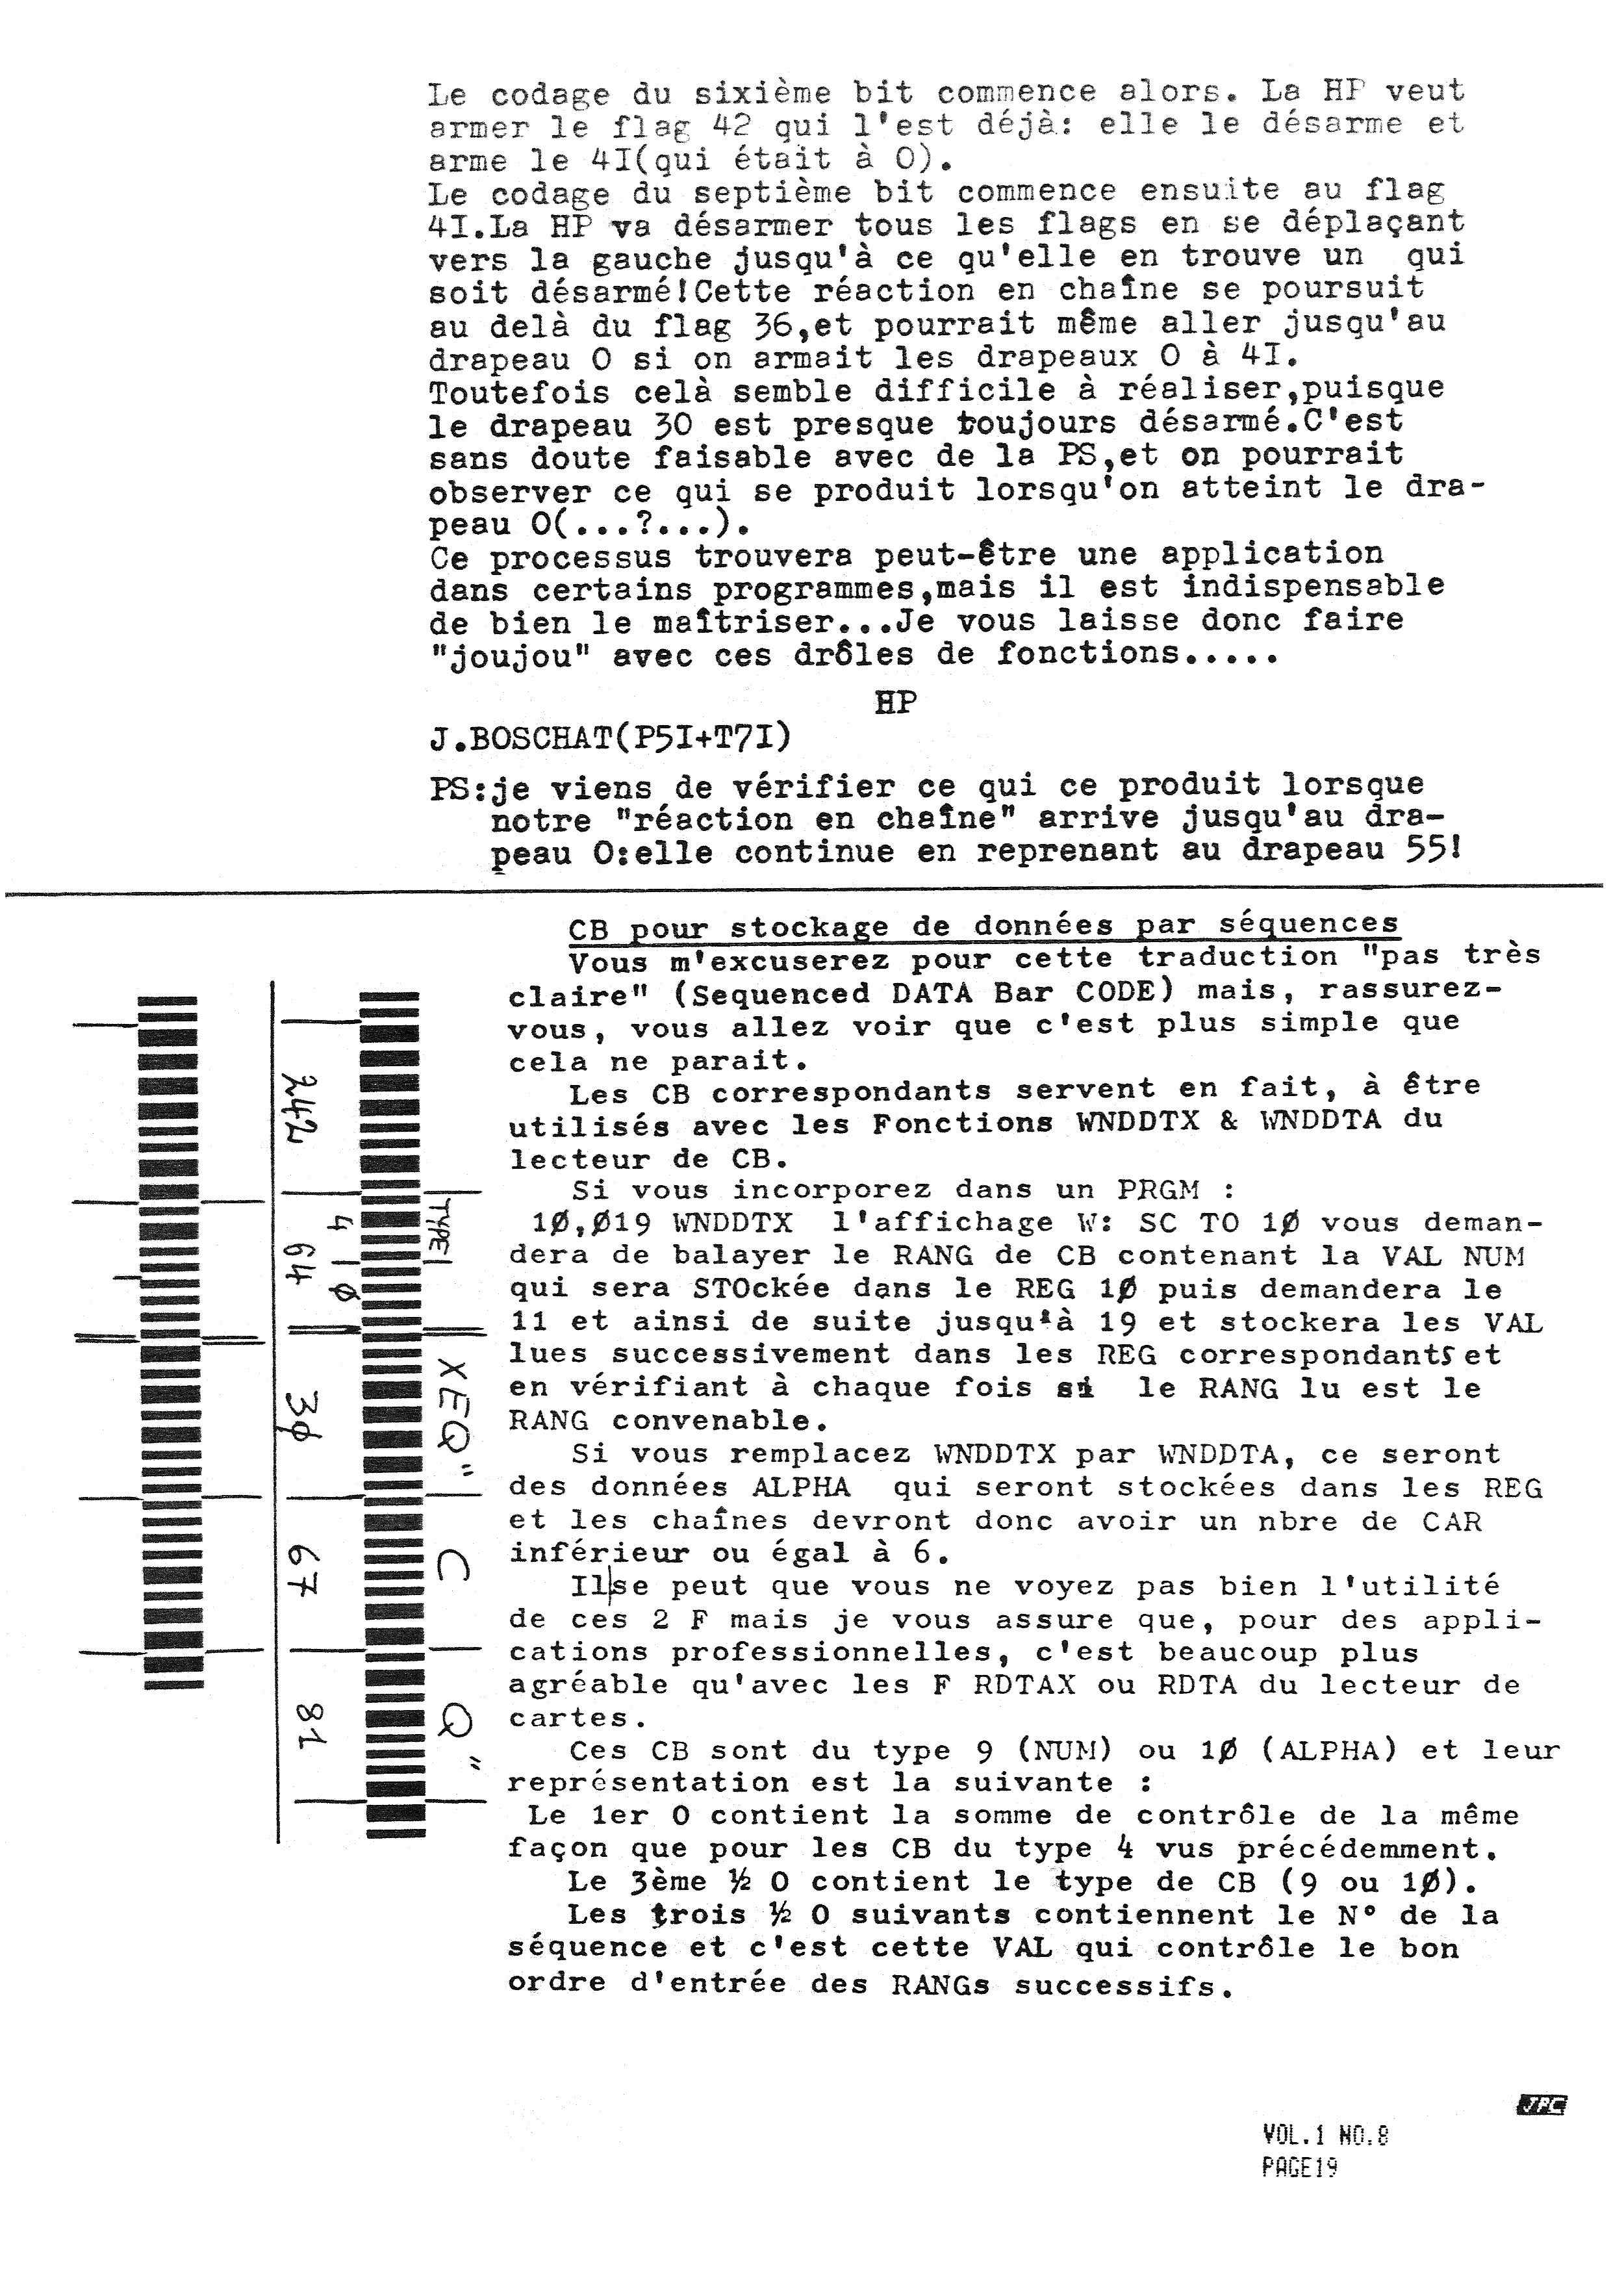 Jp-8-page-19-1000